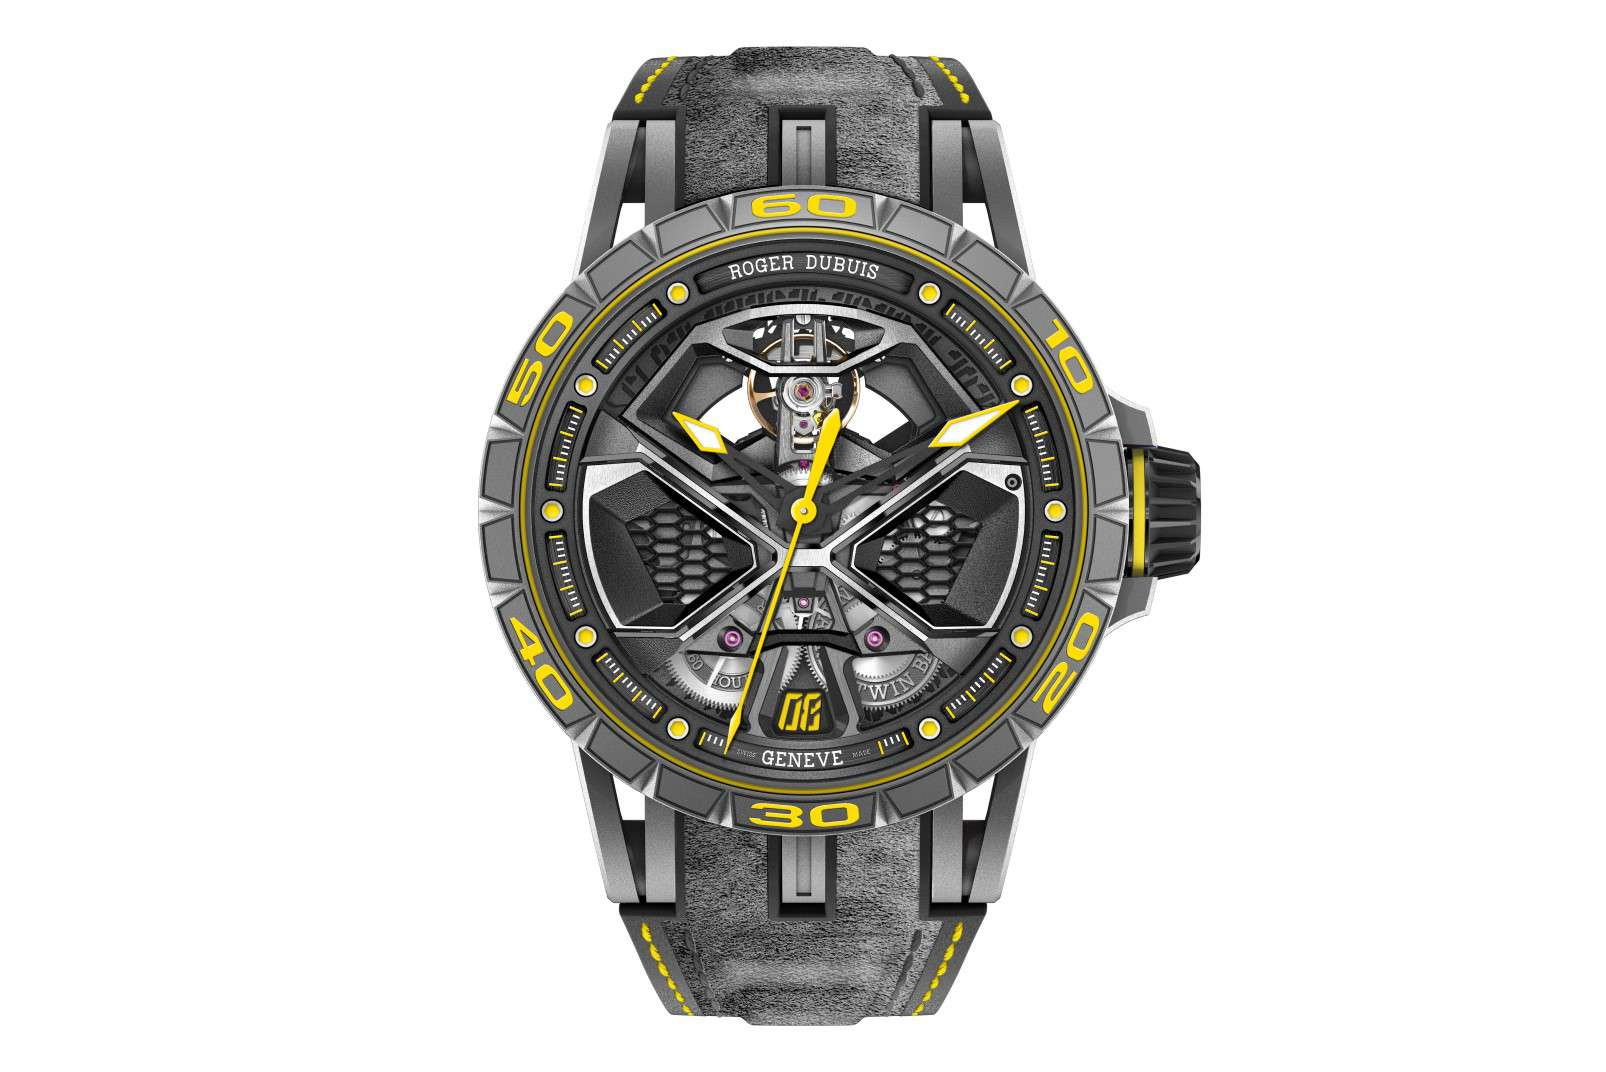 Roger Dubuis Excalibur Huracán Performante - SIHH 2019